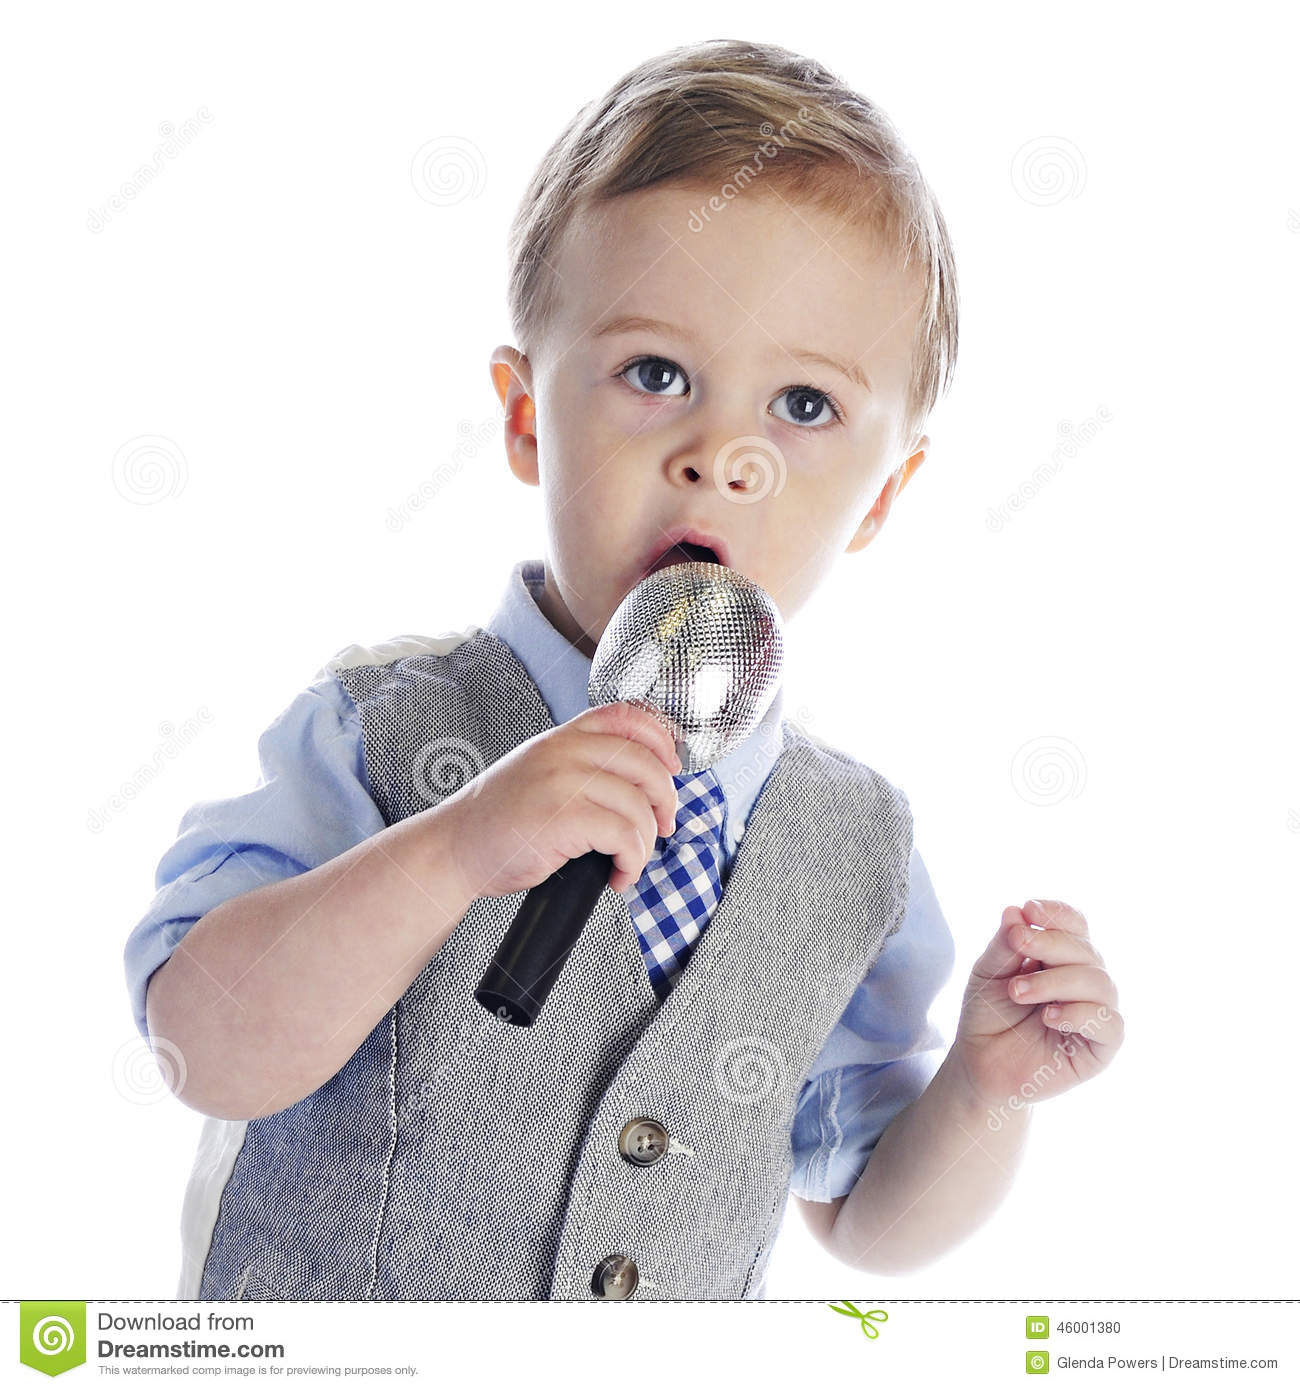 An adorable 2-year old singing (or talking) into a microphone. On a ...